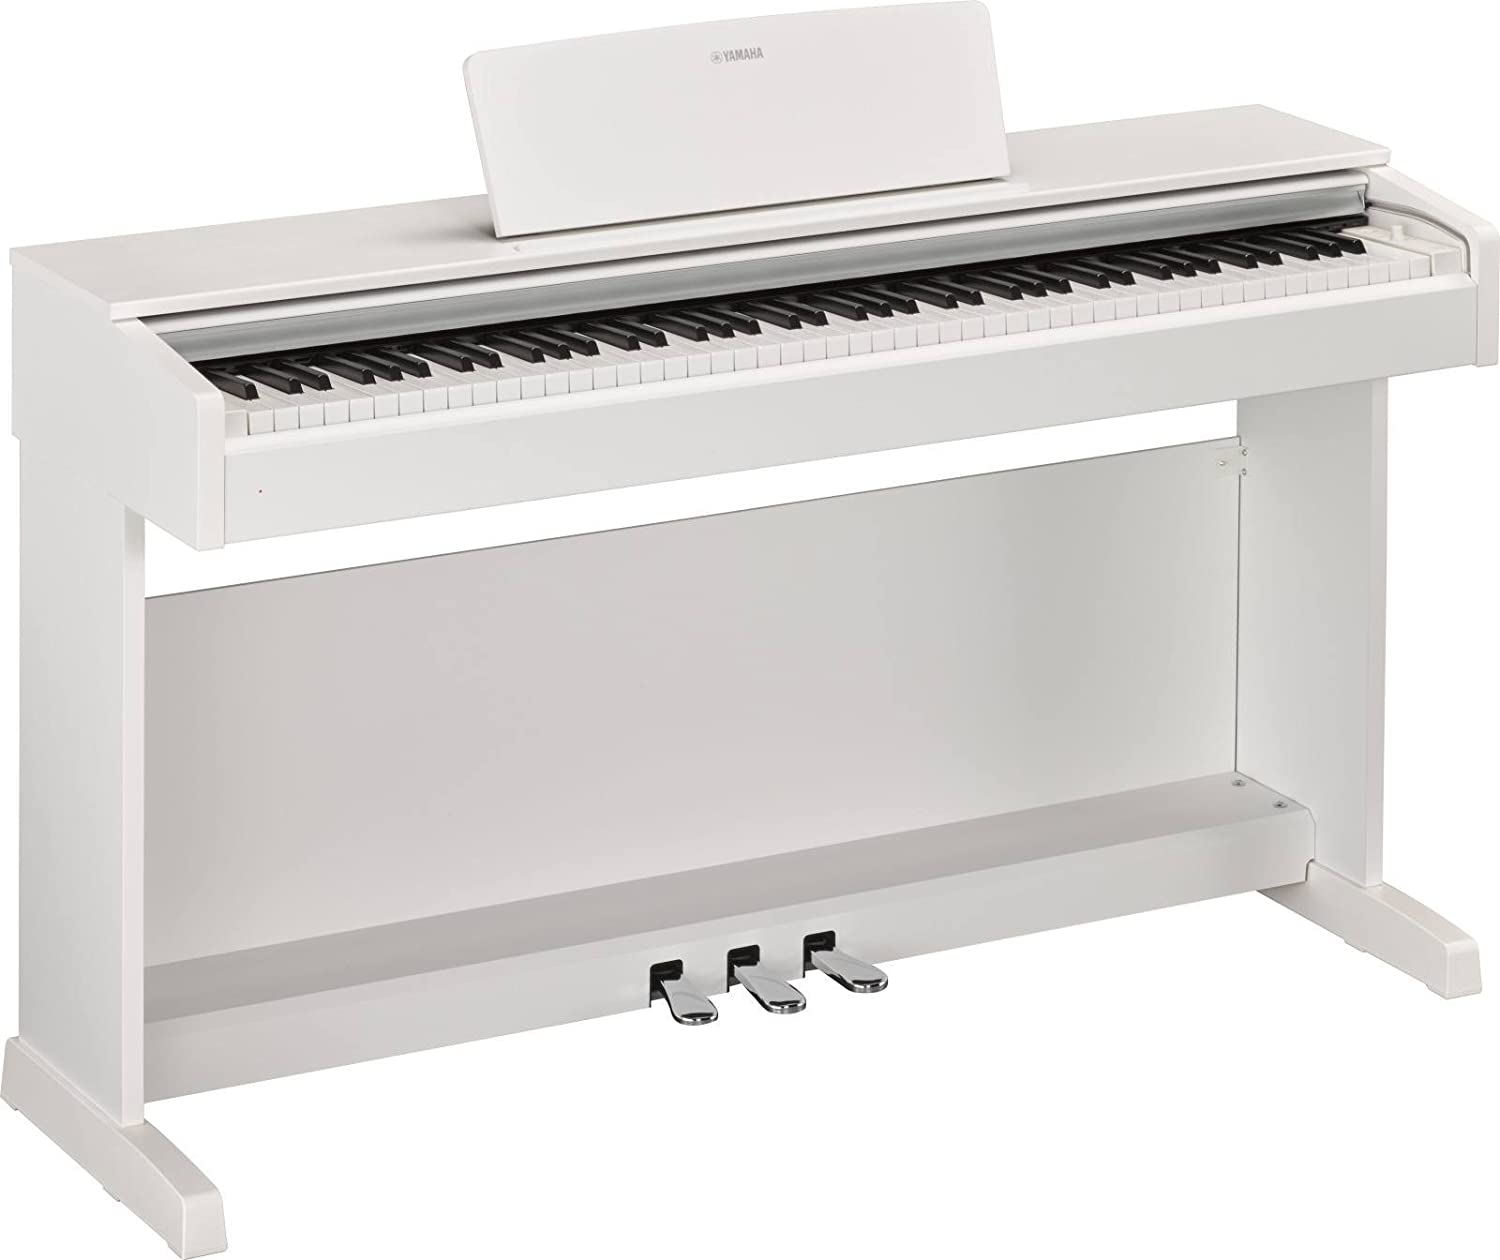 Yamaha Arius YDP-143WH - Piano digital, color blanco (White) Yamaha Musical Instruments